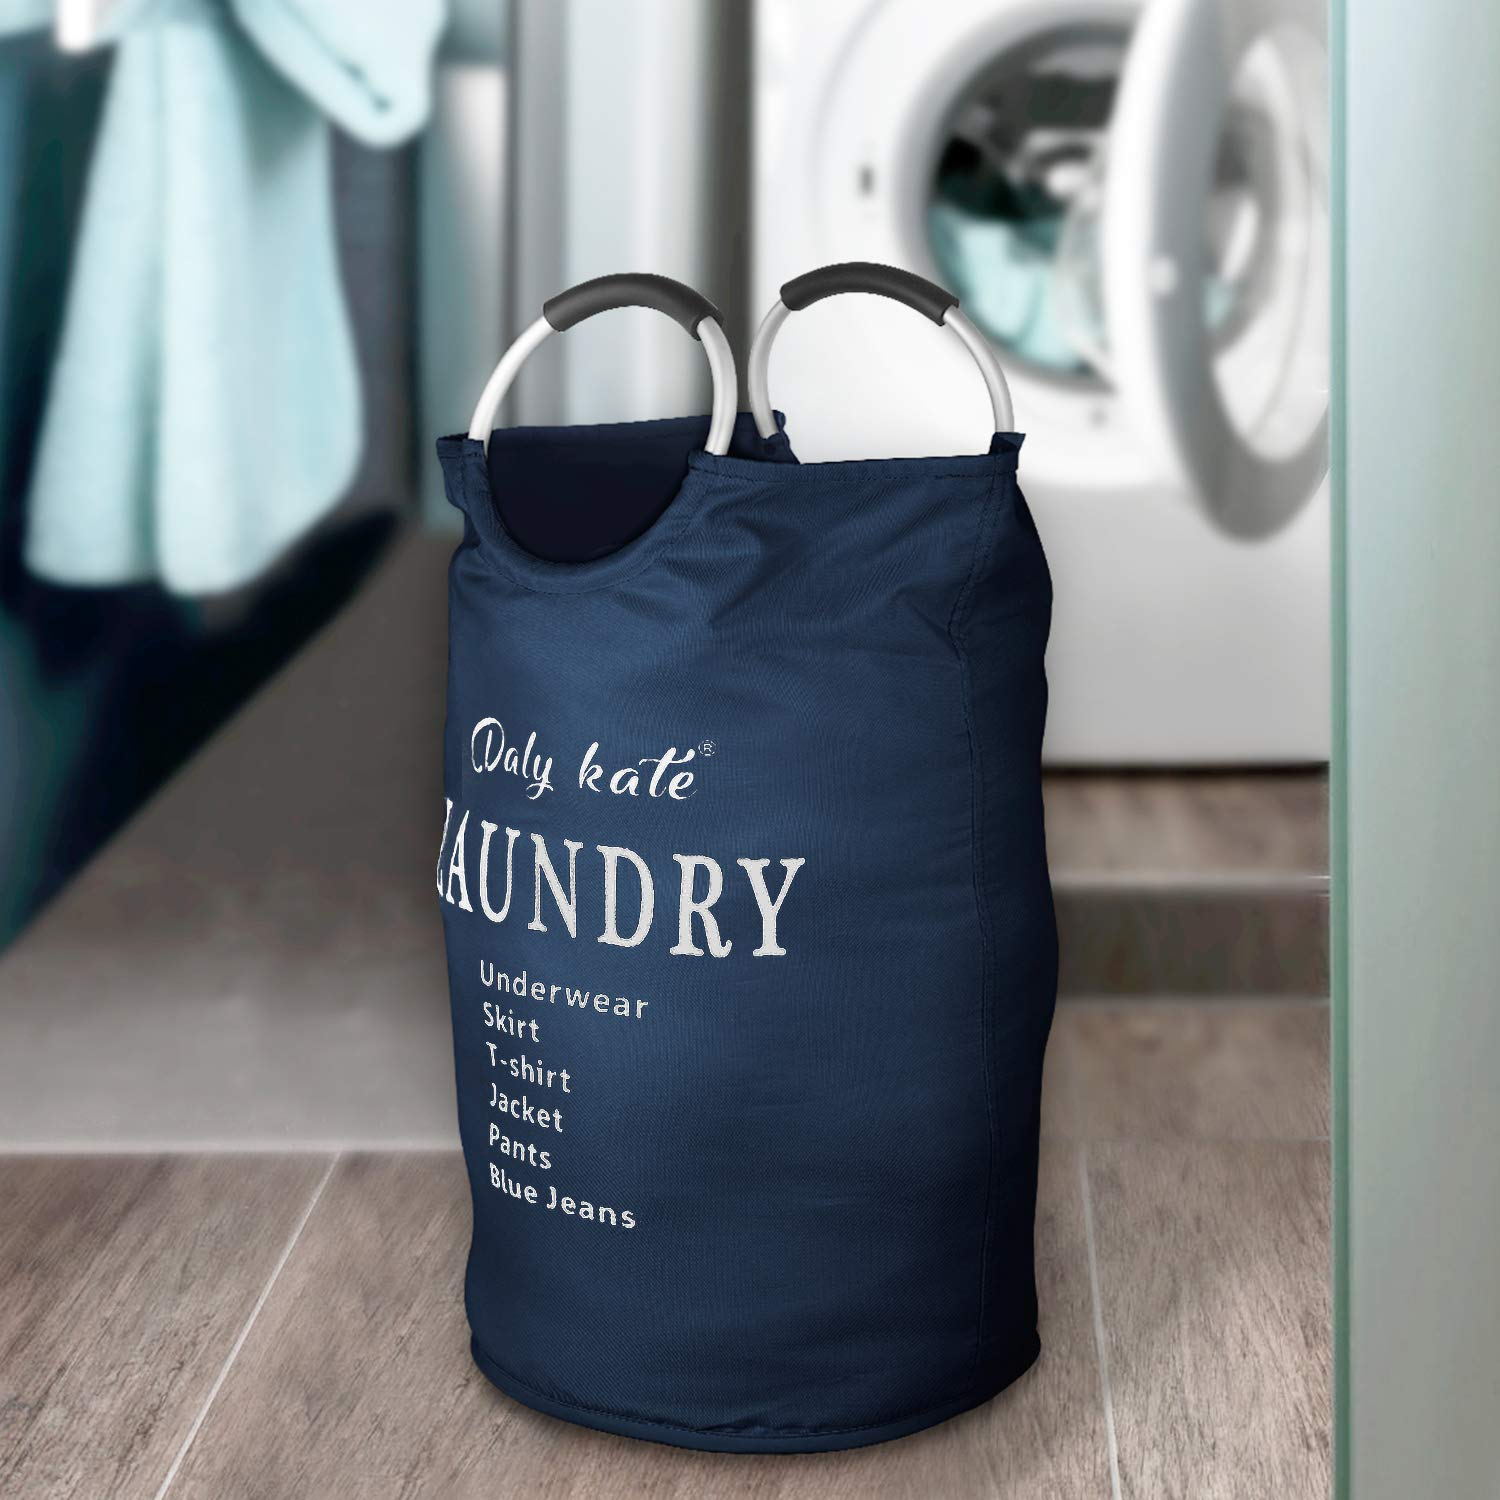 Daly Kate Large Laundry Bag Collapsible Oxford Fabric Laundry Hamper Bag with Aluminium Handles Foldable Tote Clothes Basket for Laundry and Storage-Dark Blue